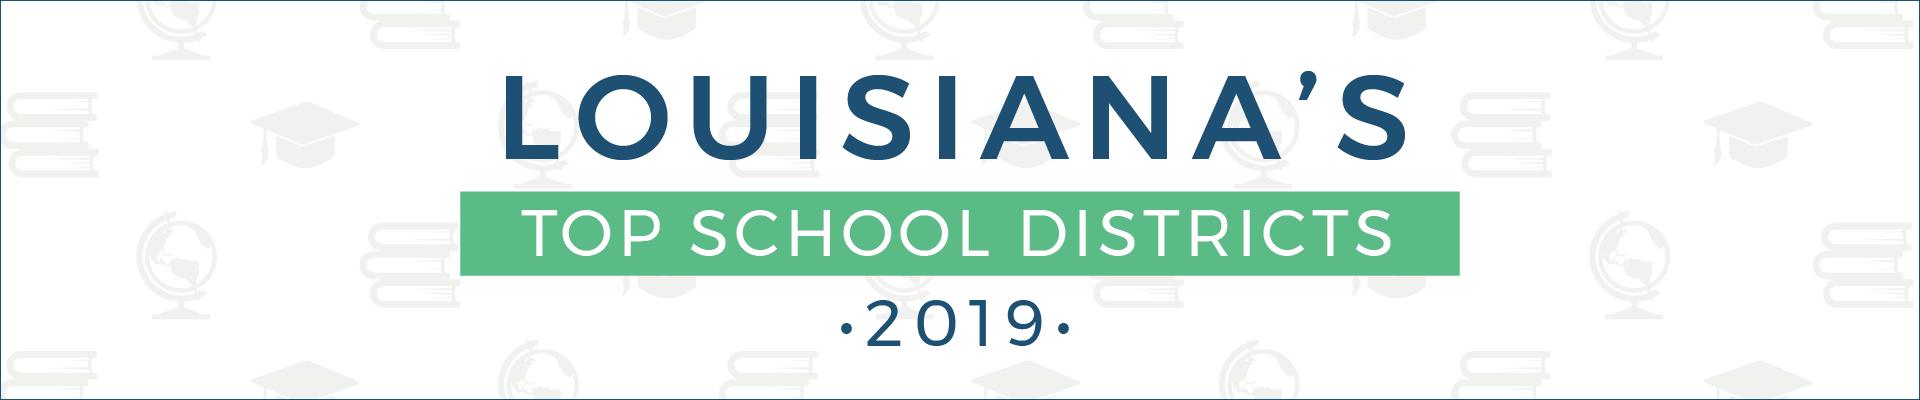 top school districts, 2019 - louisiana - banner